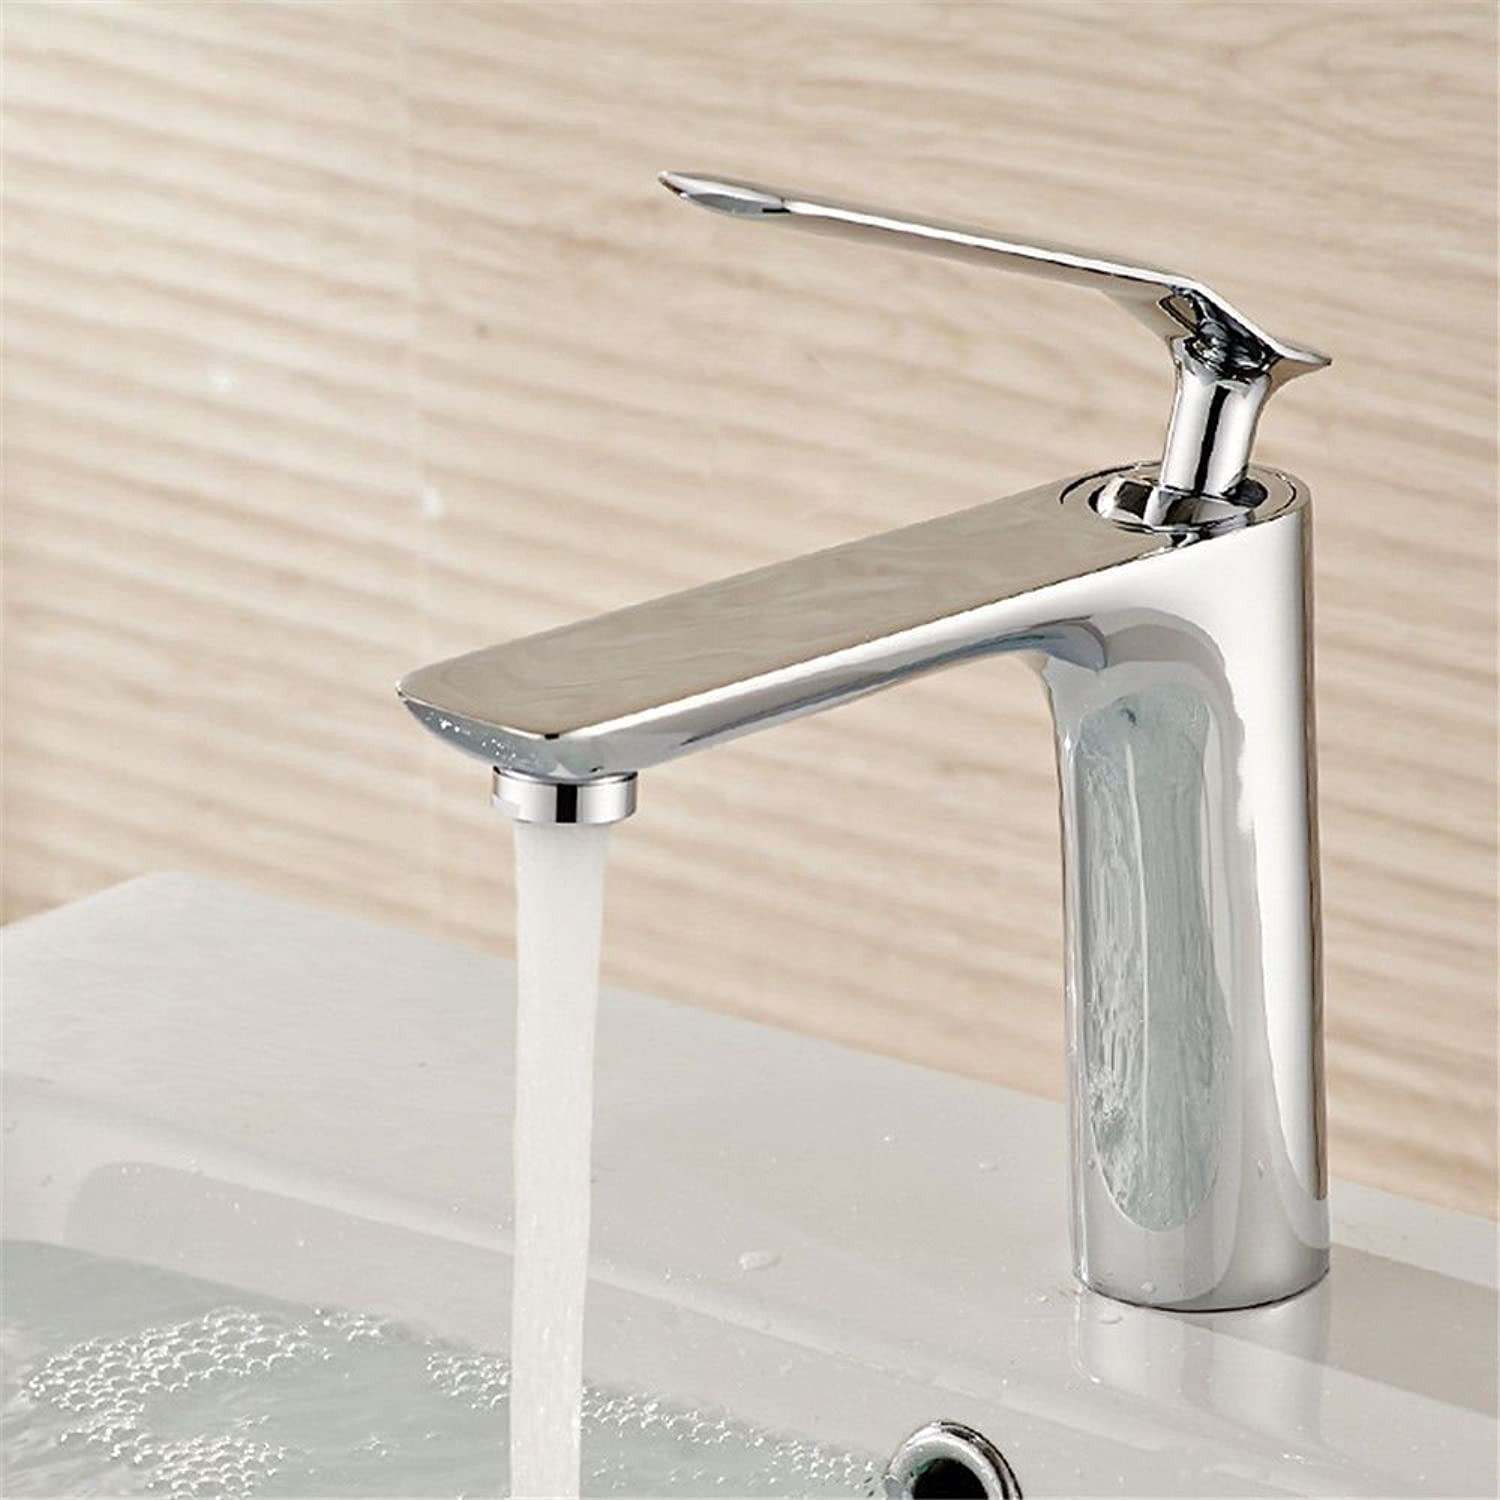 AQMMi Basin Sink Tap Bathroom Bar Faucet White Stoving Lacquer Hot and Cold Water Brass 1 Hole Single Lever Single Lever Bathroom Basin Sink Faucet